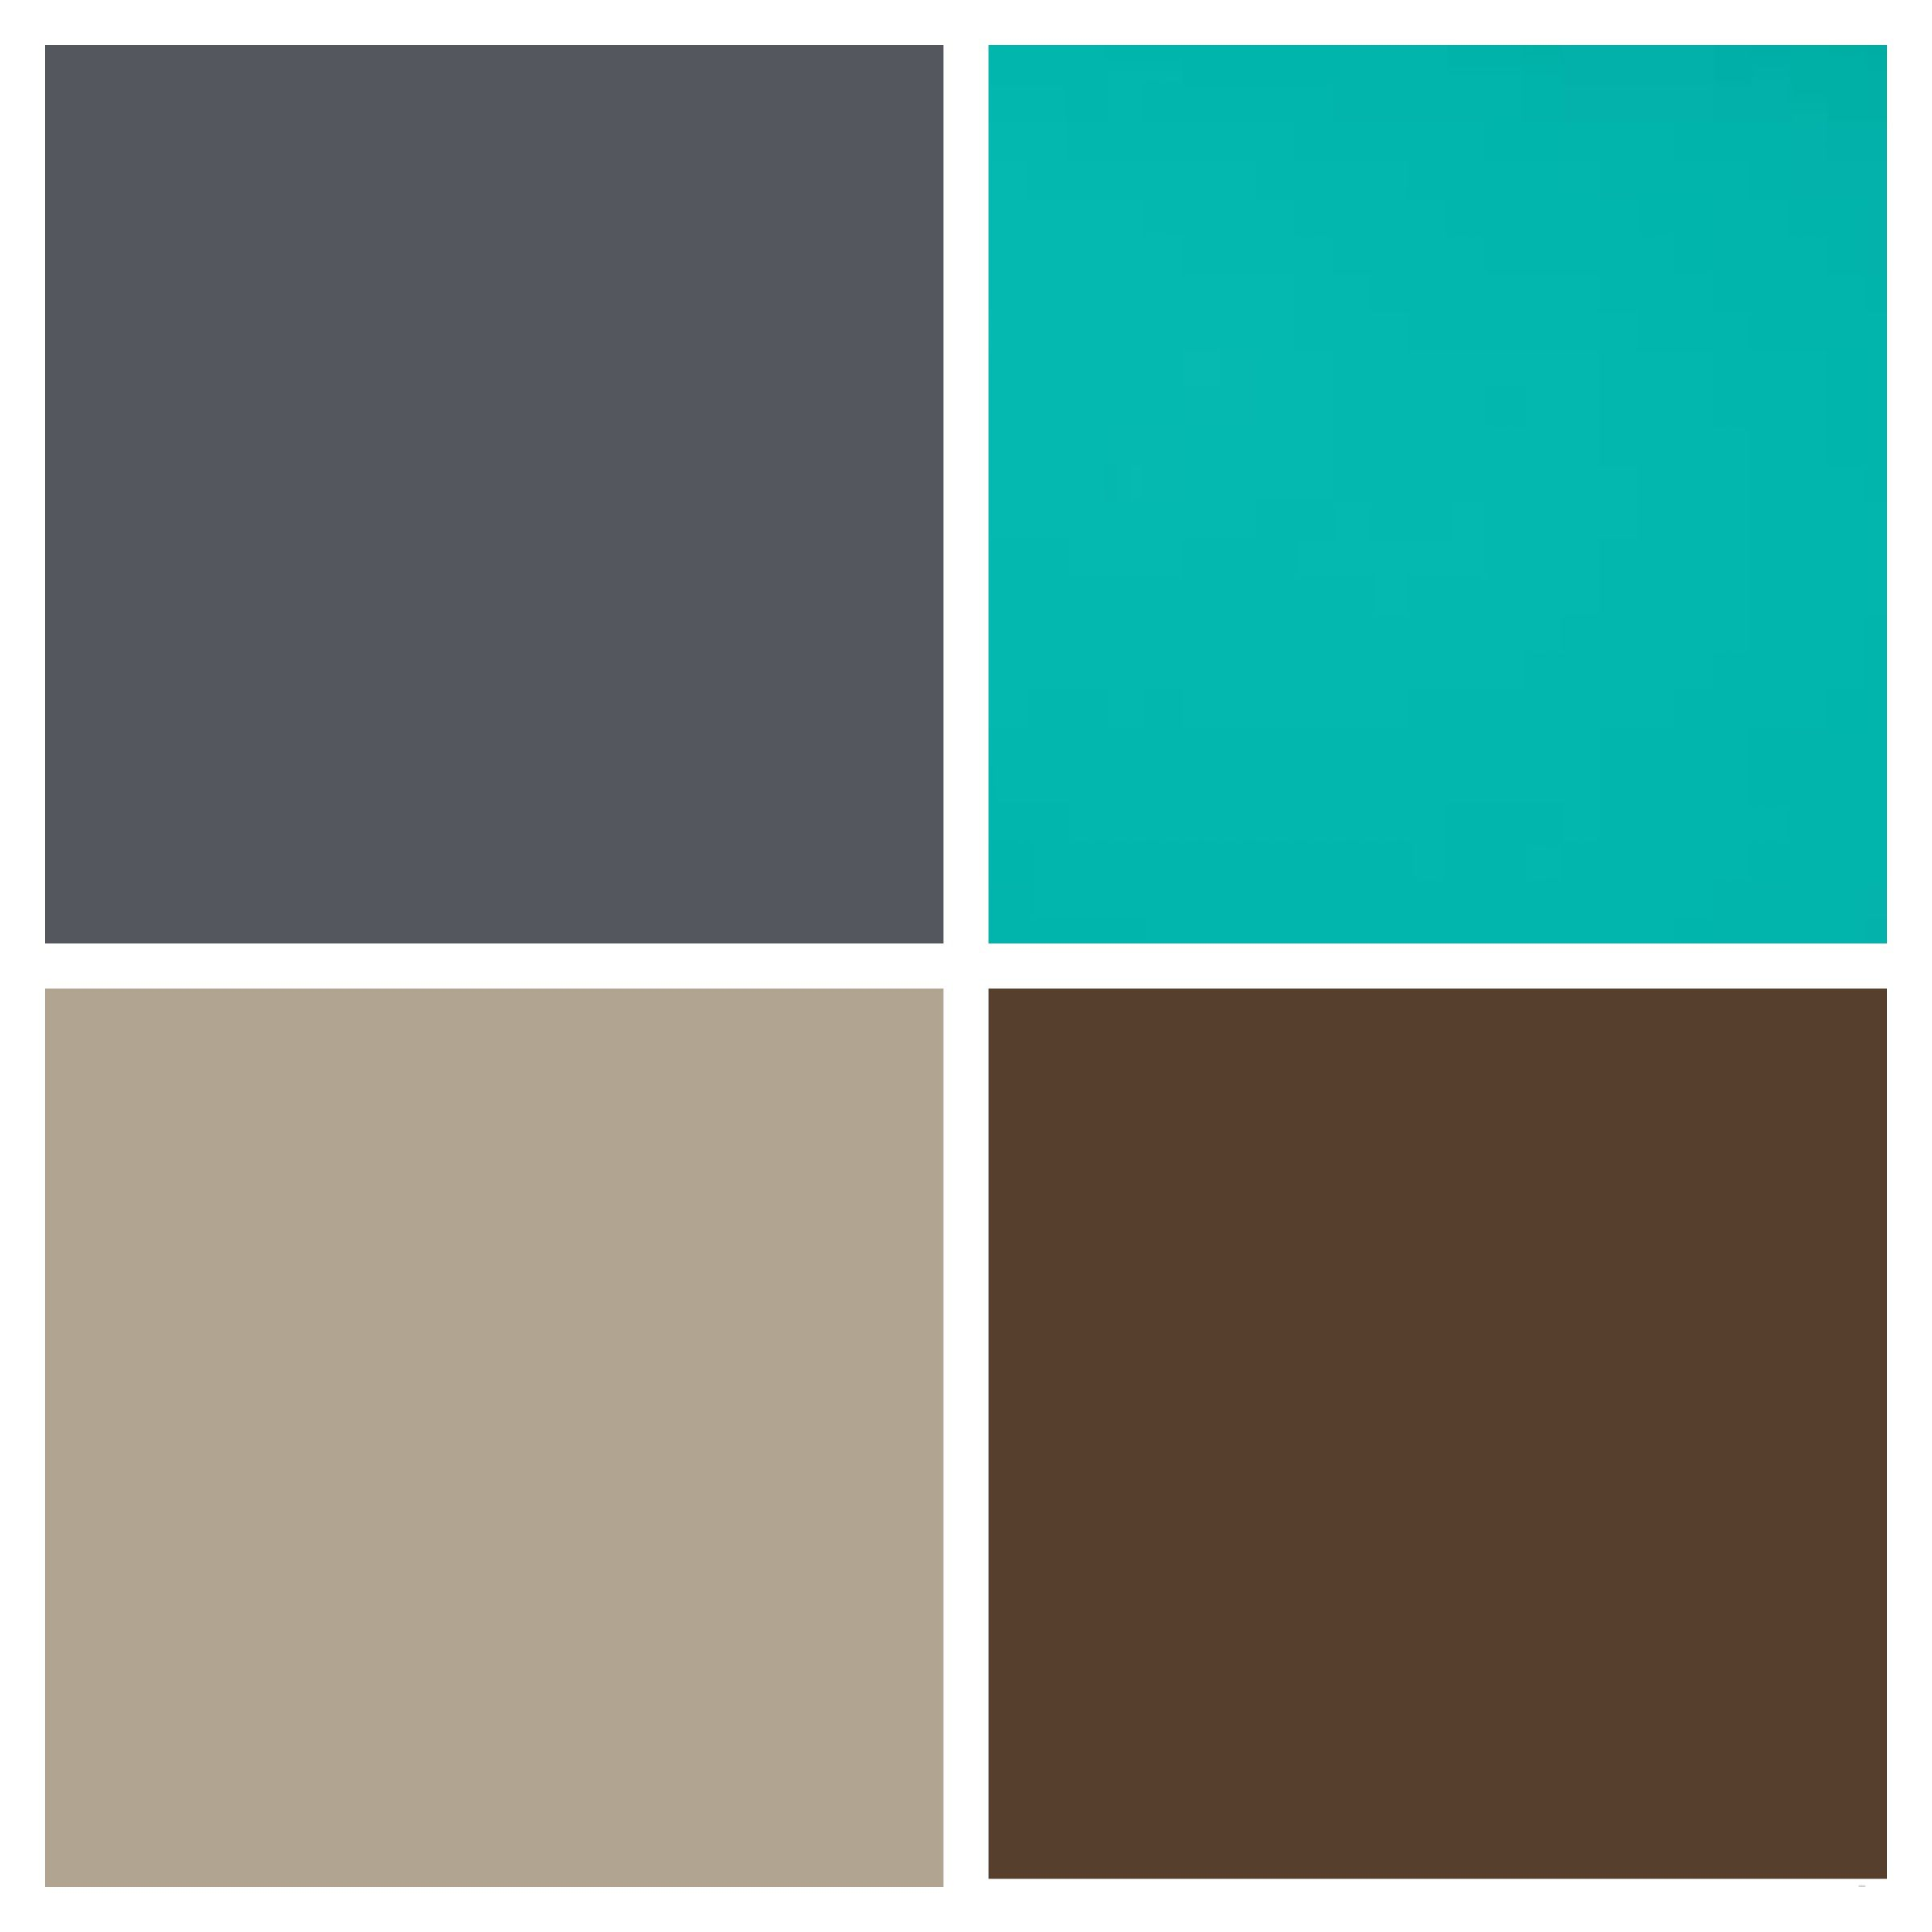 Bedroom color palette slate gray storm grey turquoise for What color is taupe gray